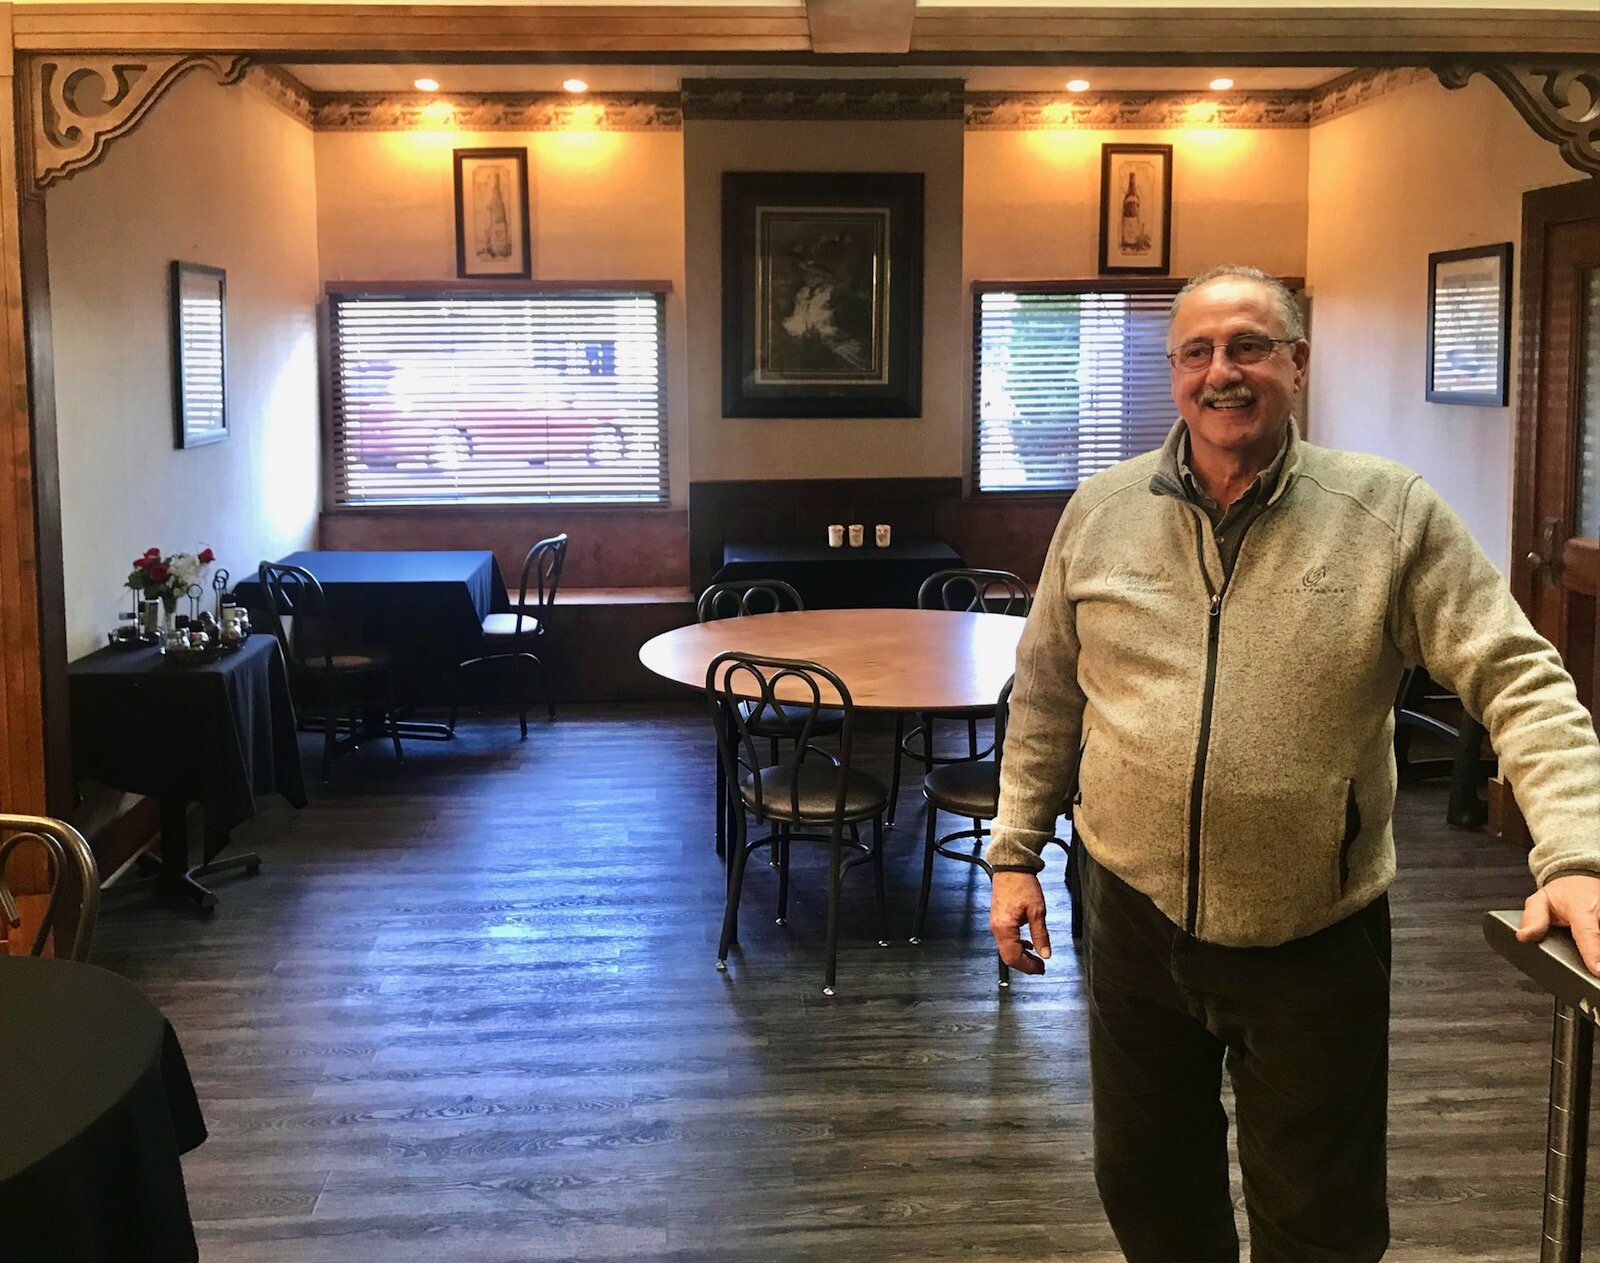 Peter Comensoli stands in a dining and private events room that helped the restaurant space out its customers in order to meet state-mandated social distancing requirements.